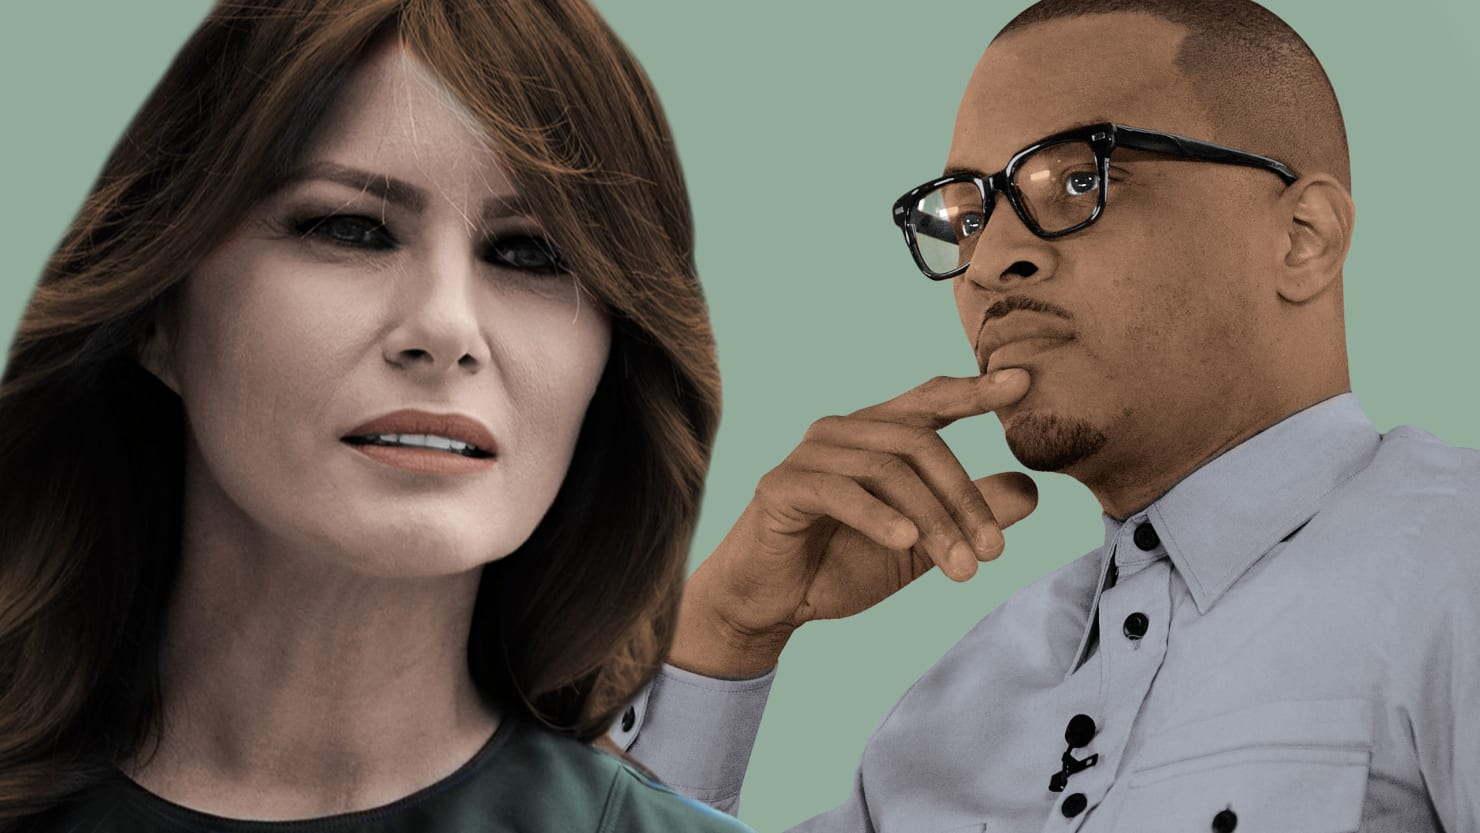 T.I.'s Video of 'Melania' Stripping in the Oval Office Is Nothing Compared to Trump